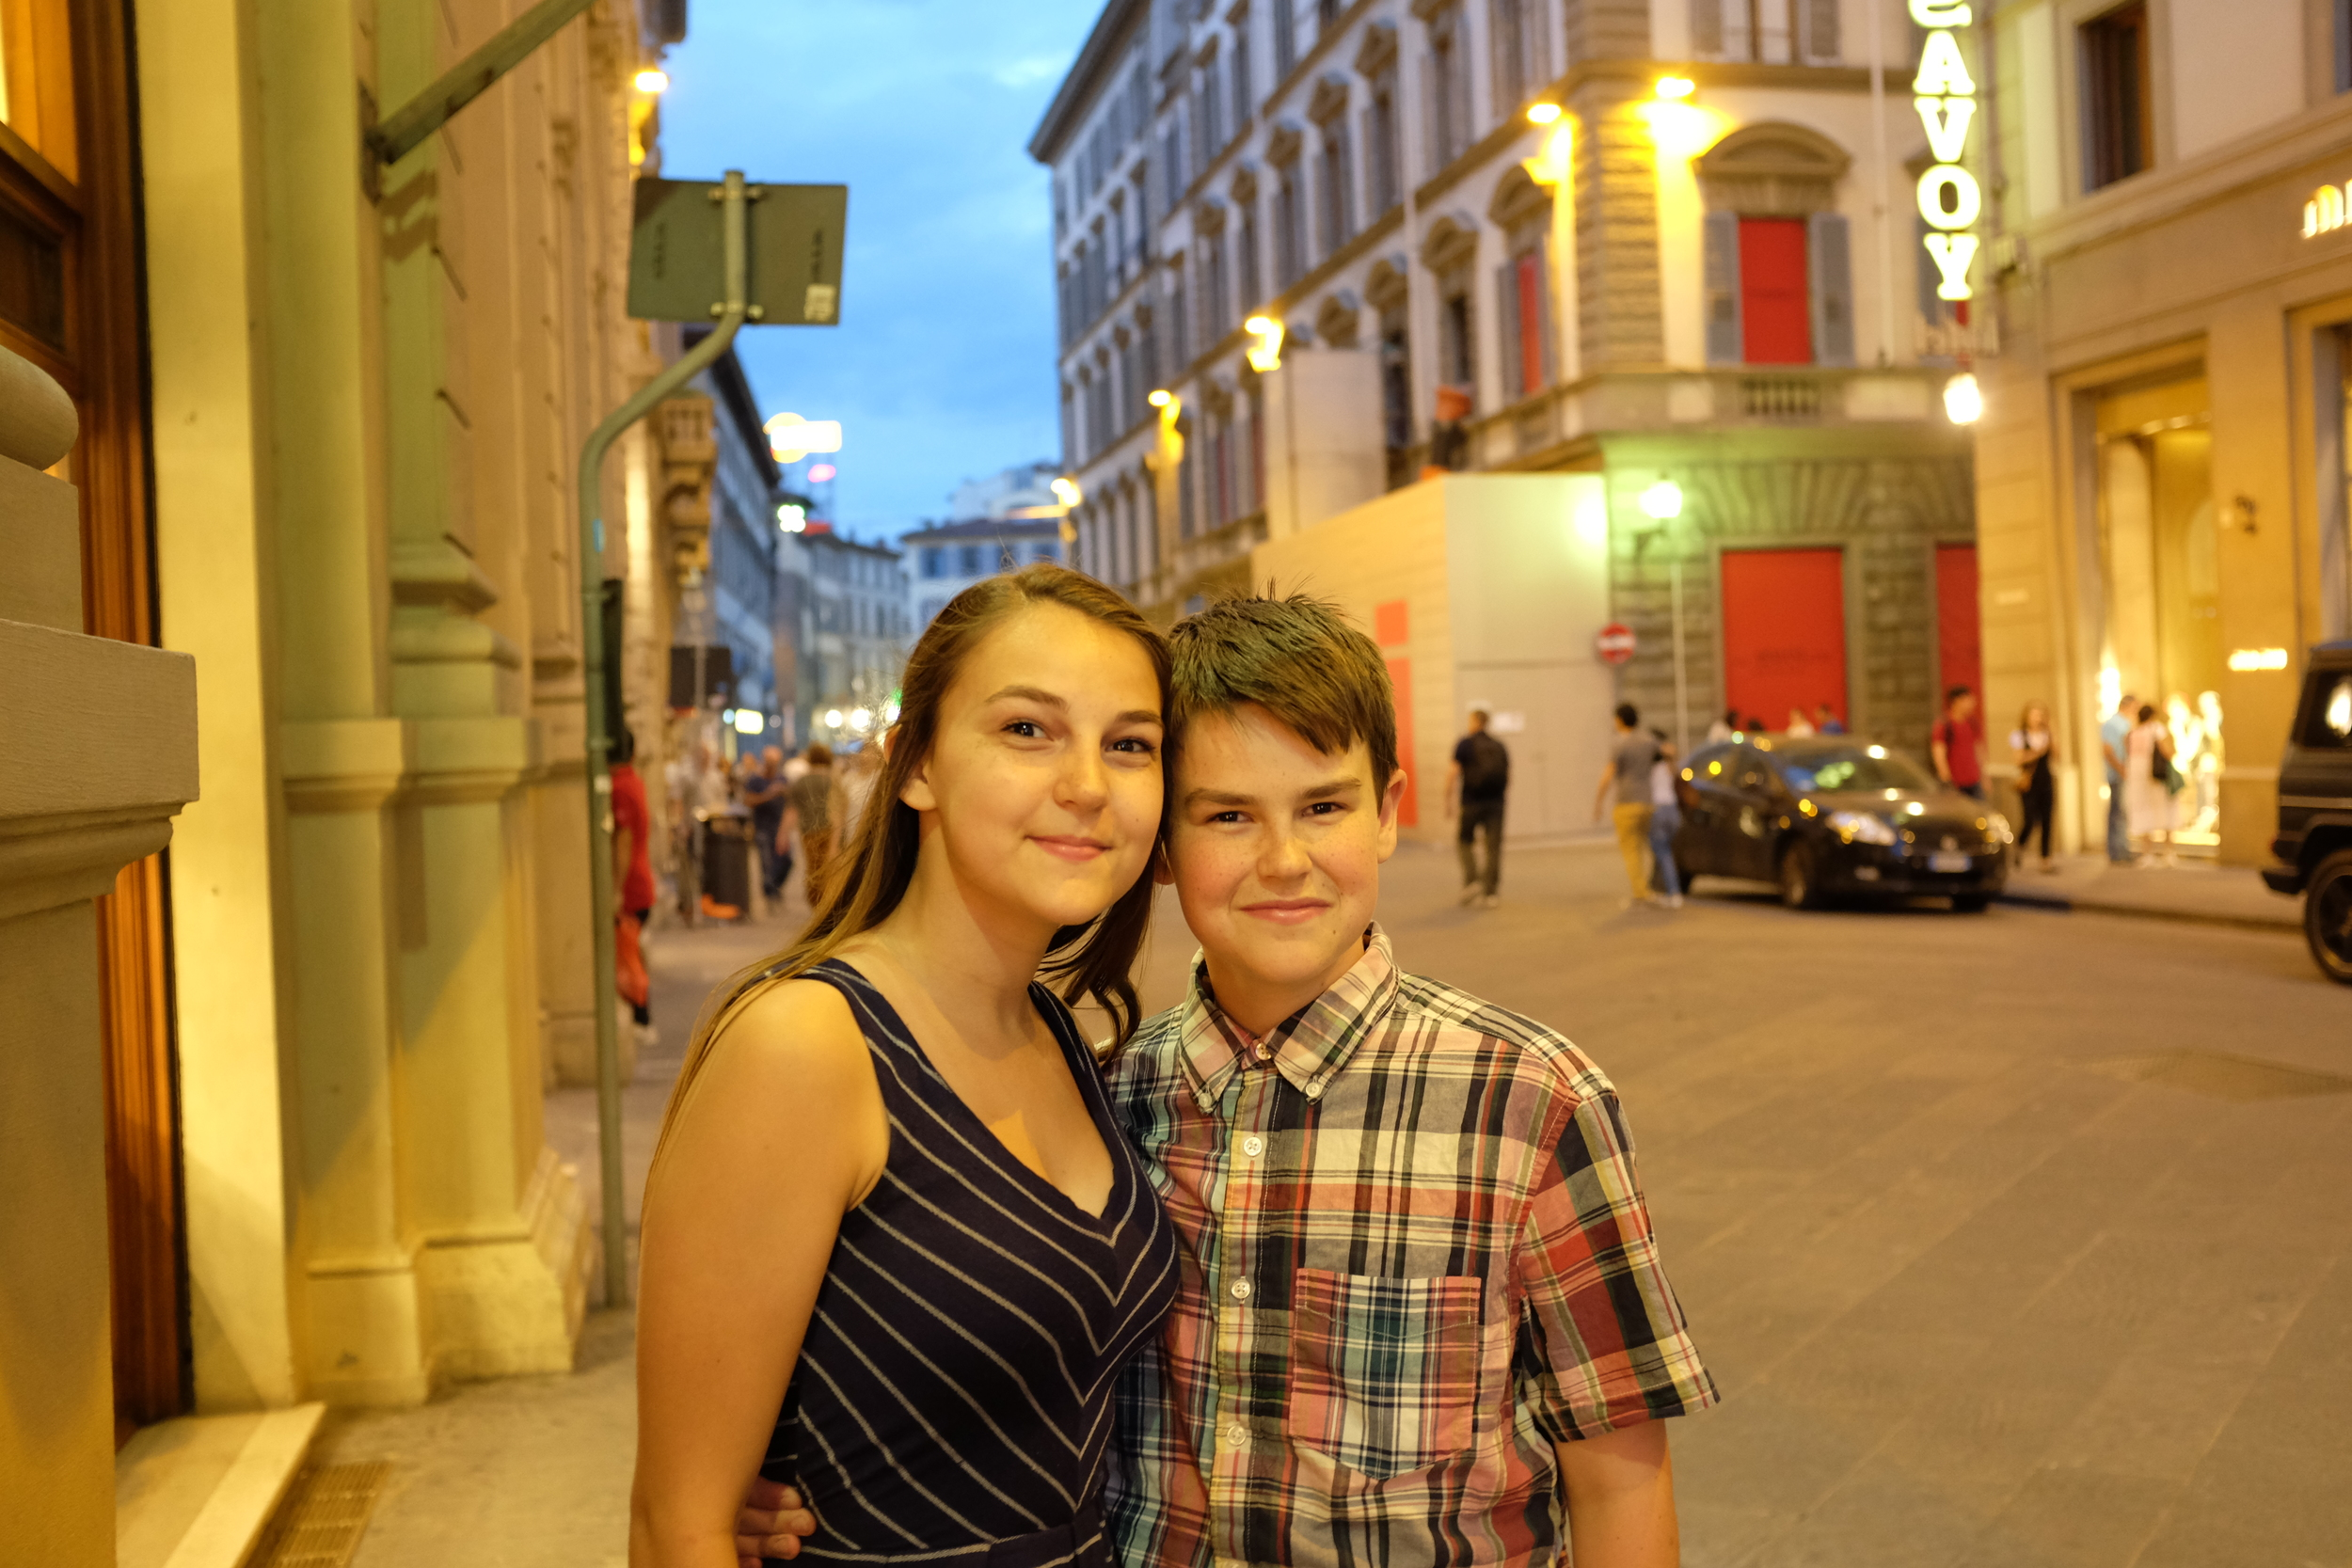 Syd and Sam out and about in Florence